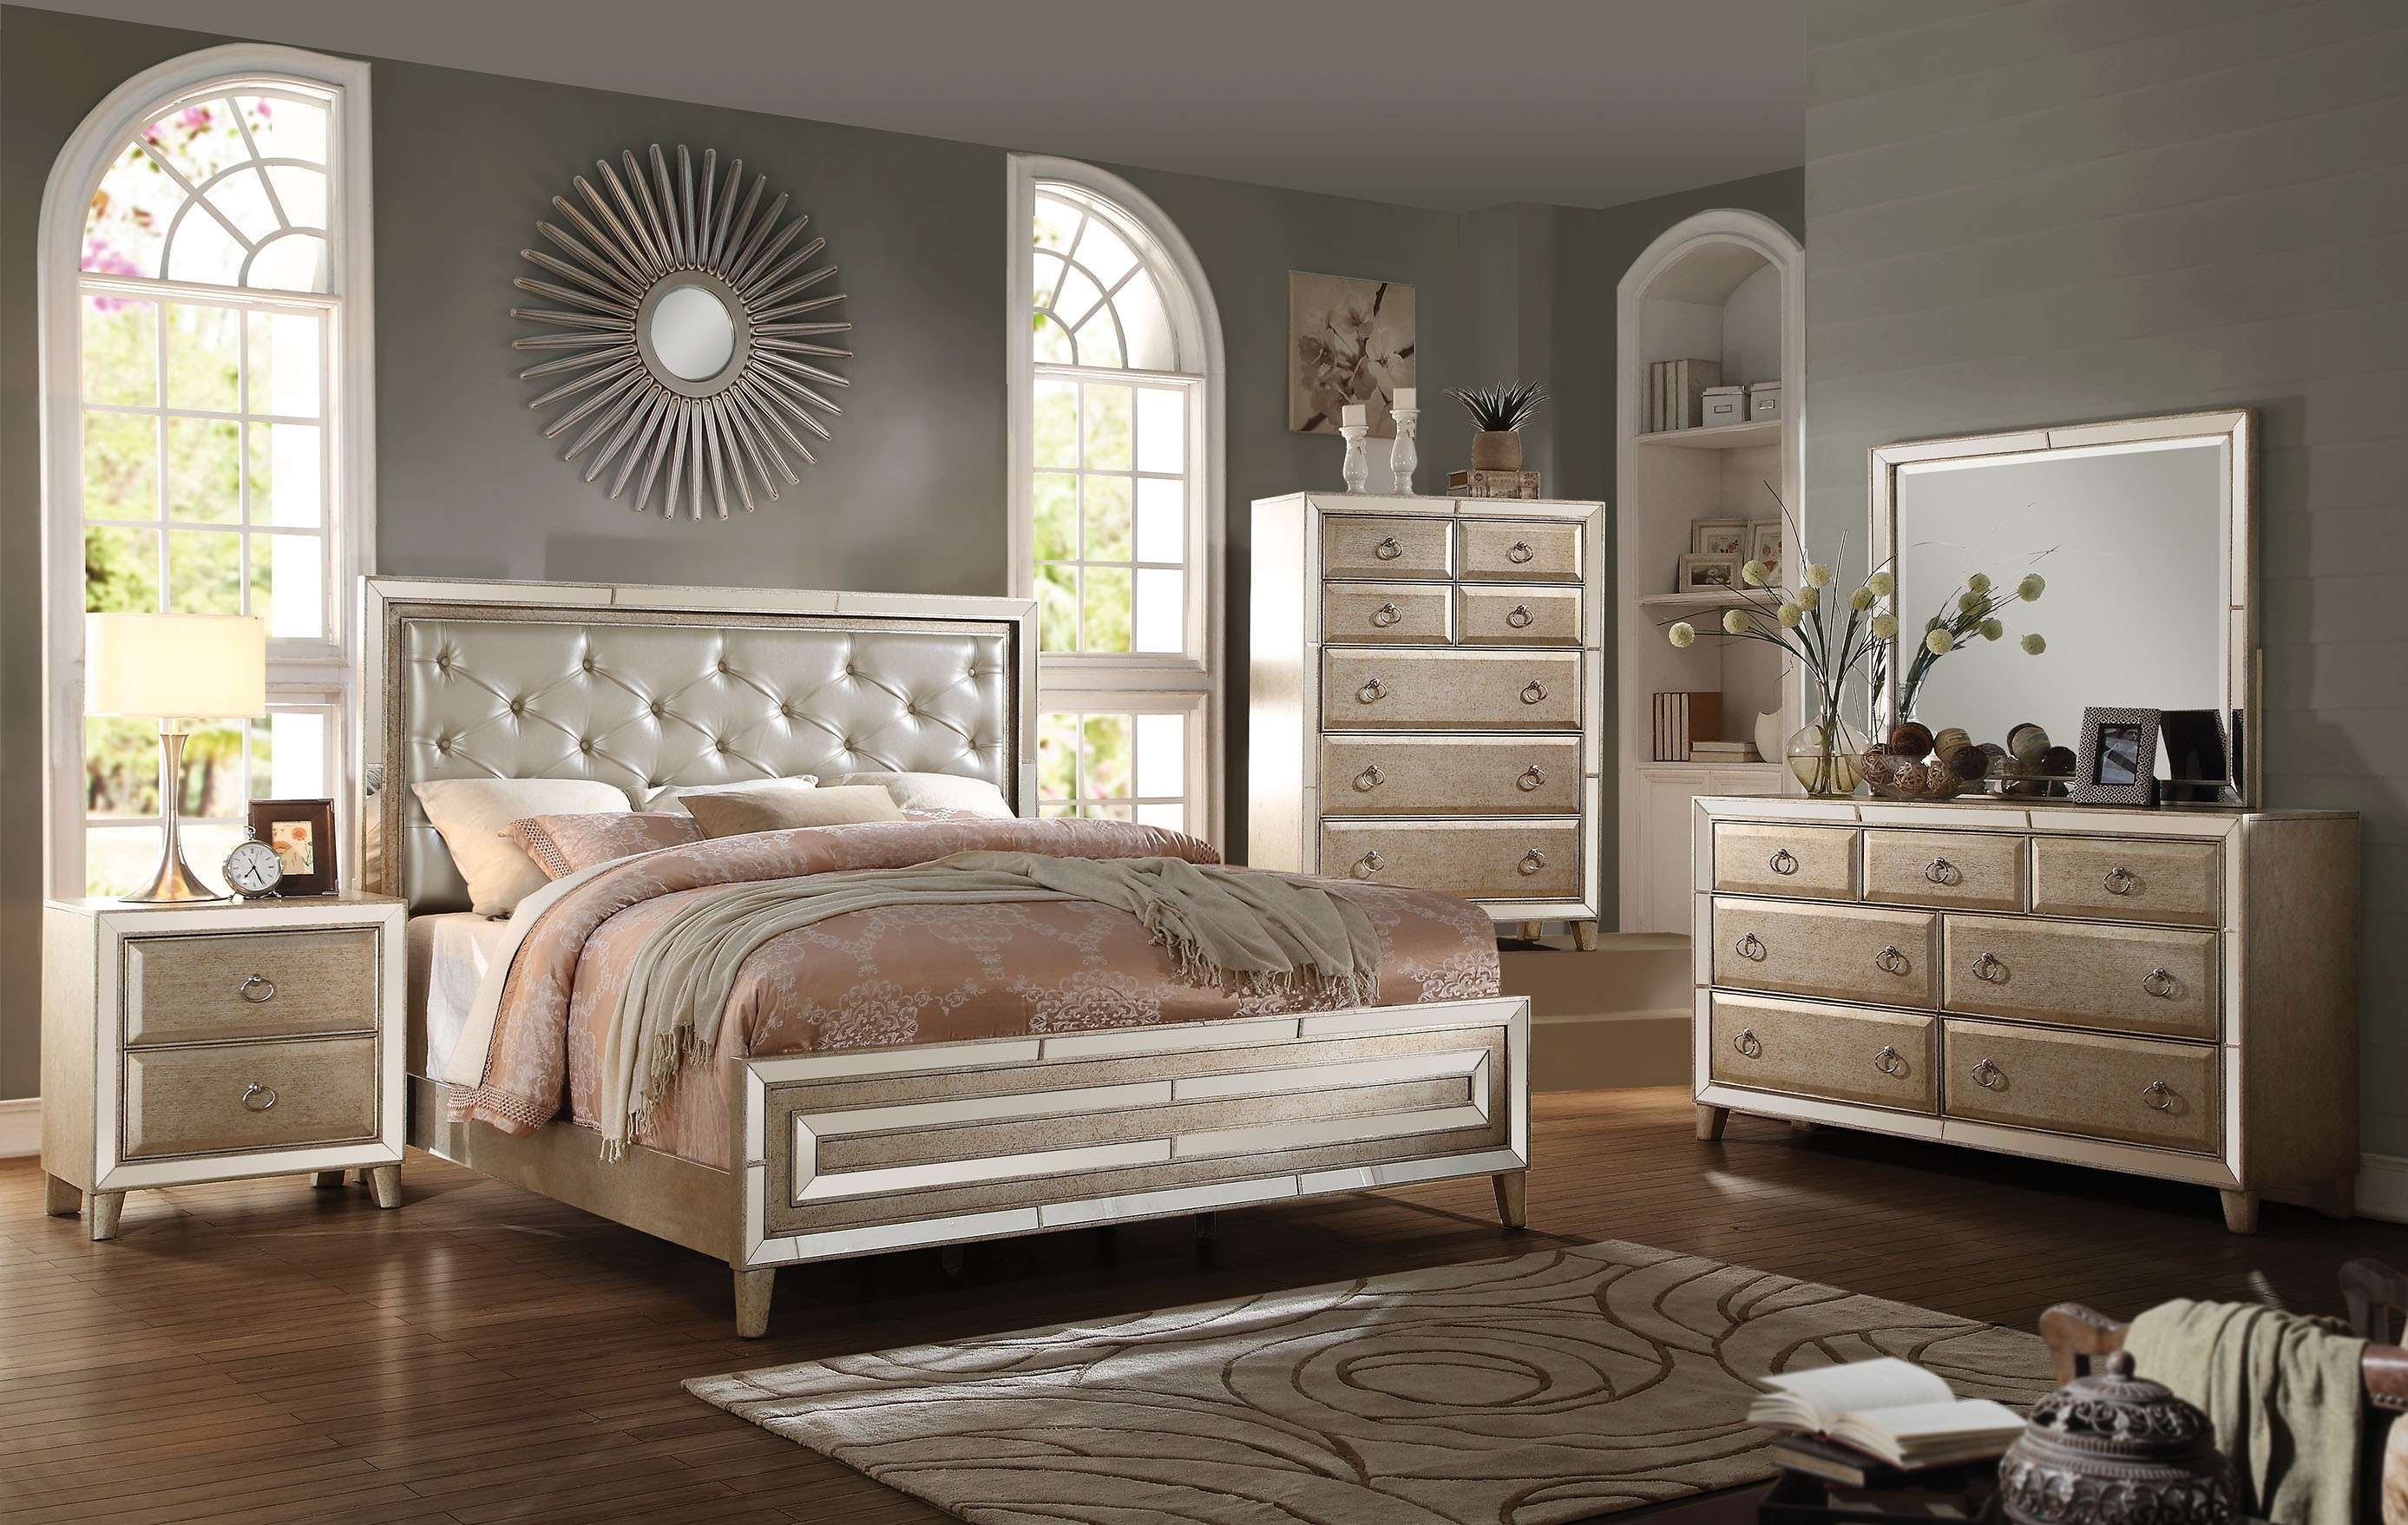 45 Beautiful King Size Bedroom Furniture Sets Layjao